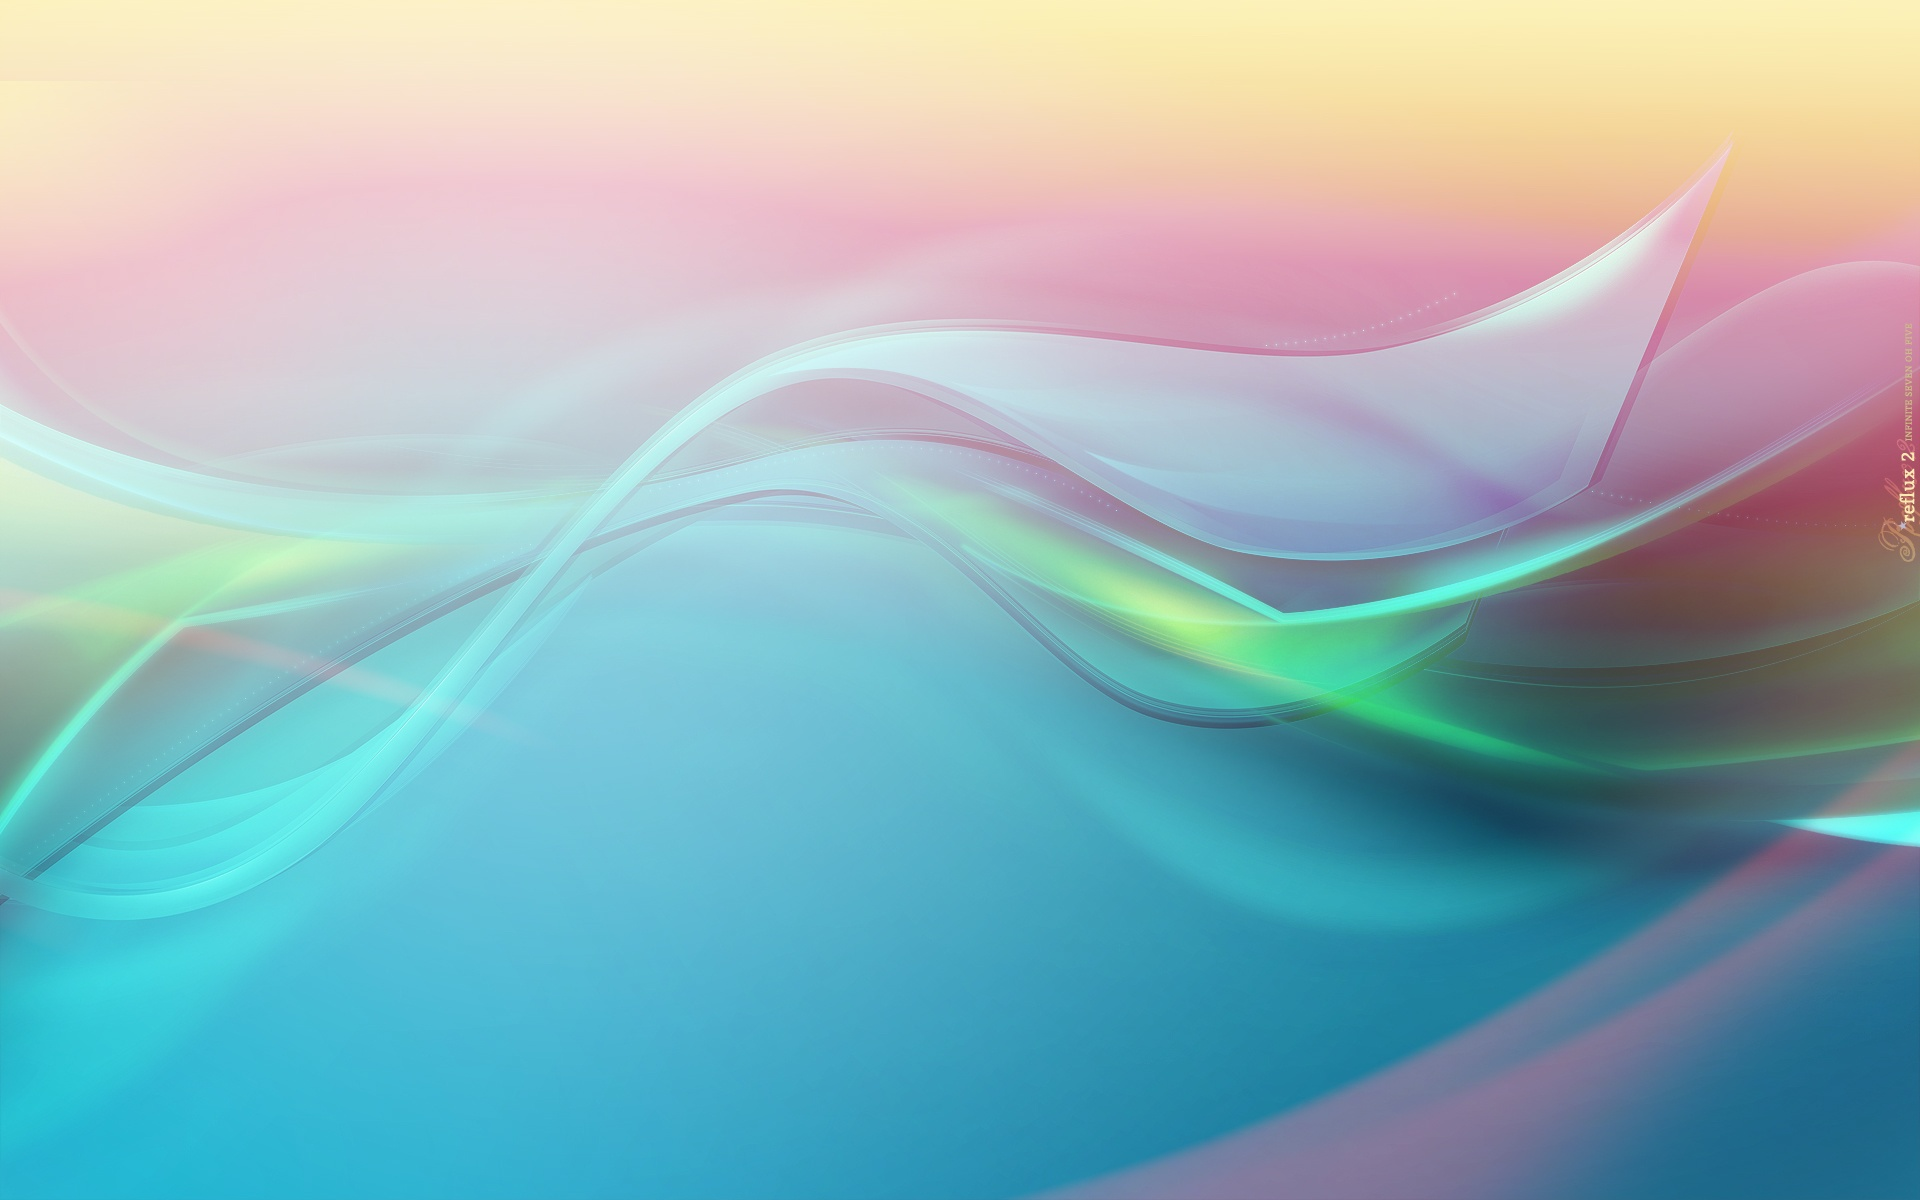 abstract light color wallpaper - sf wallpaper